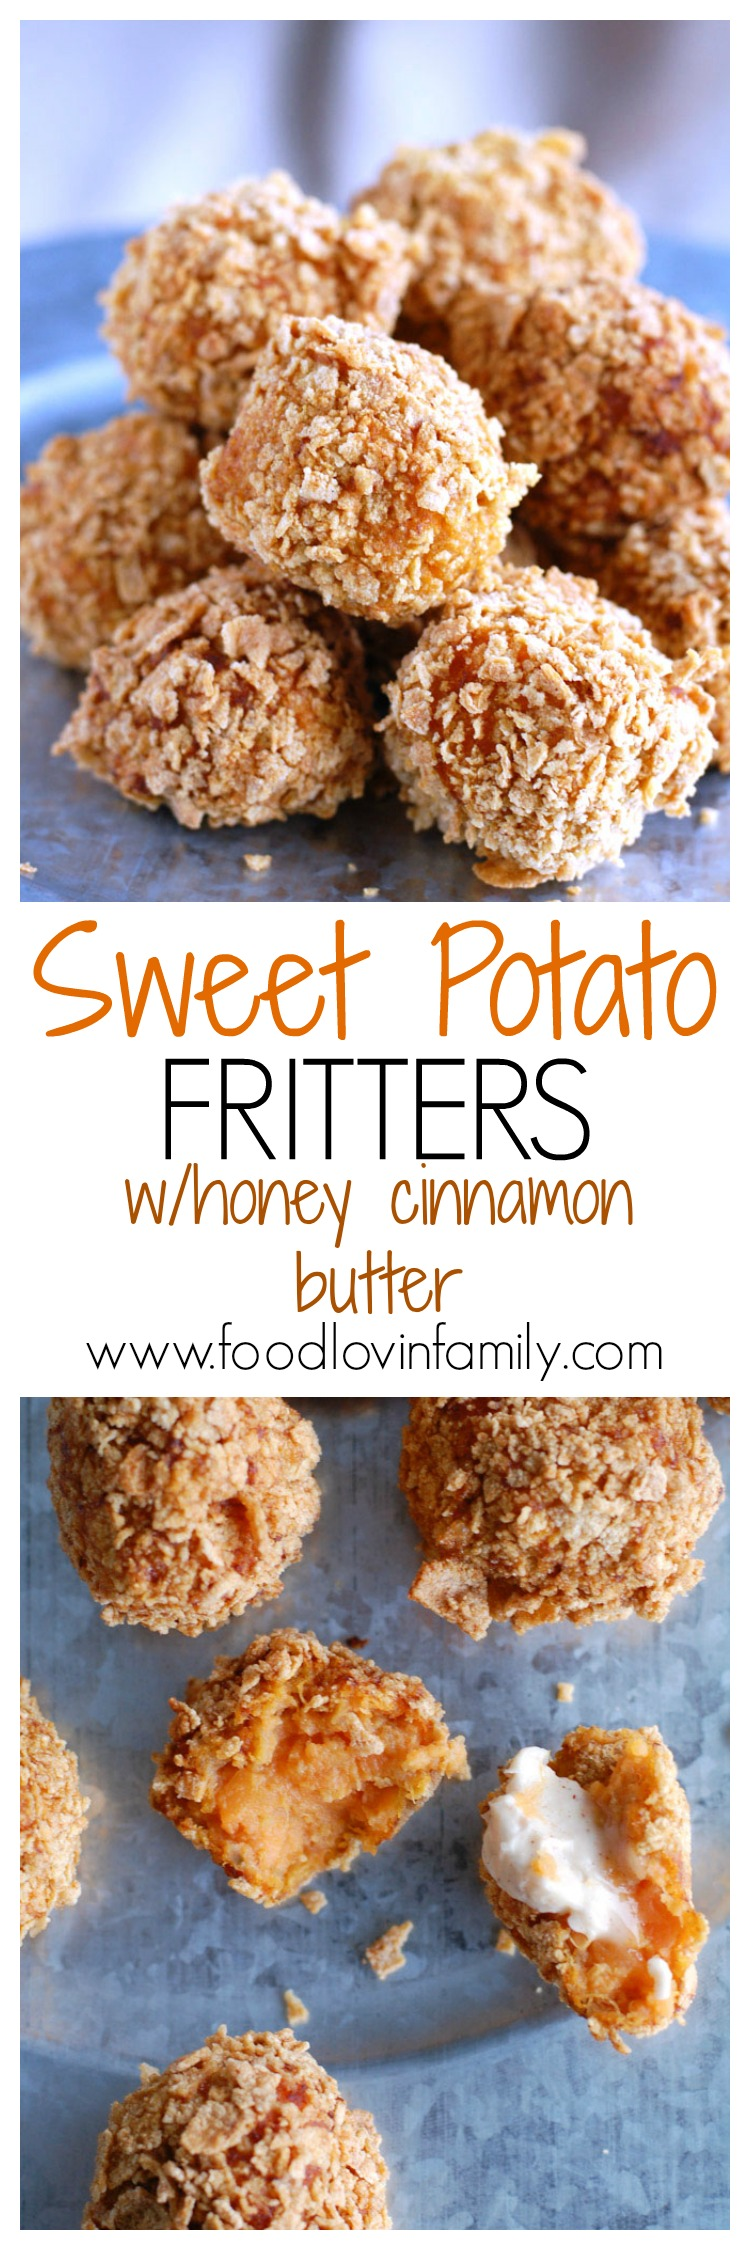 Enjoy the slight sweetness and crunch of these sweet potato fritters with honey cinnamon butter.